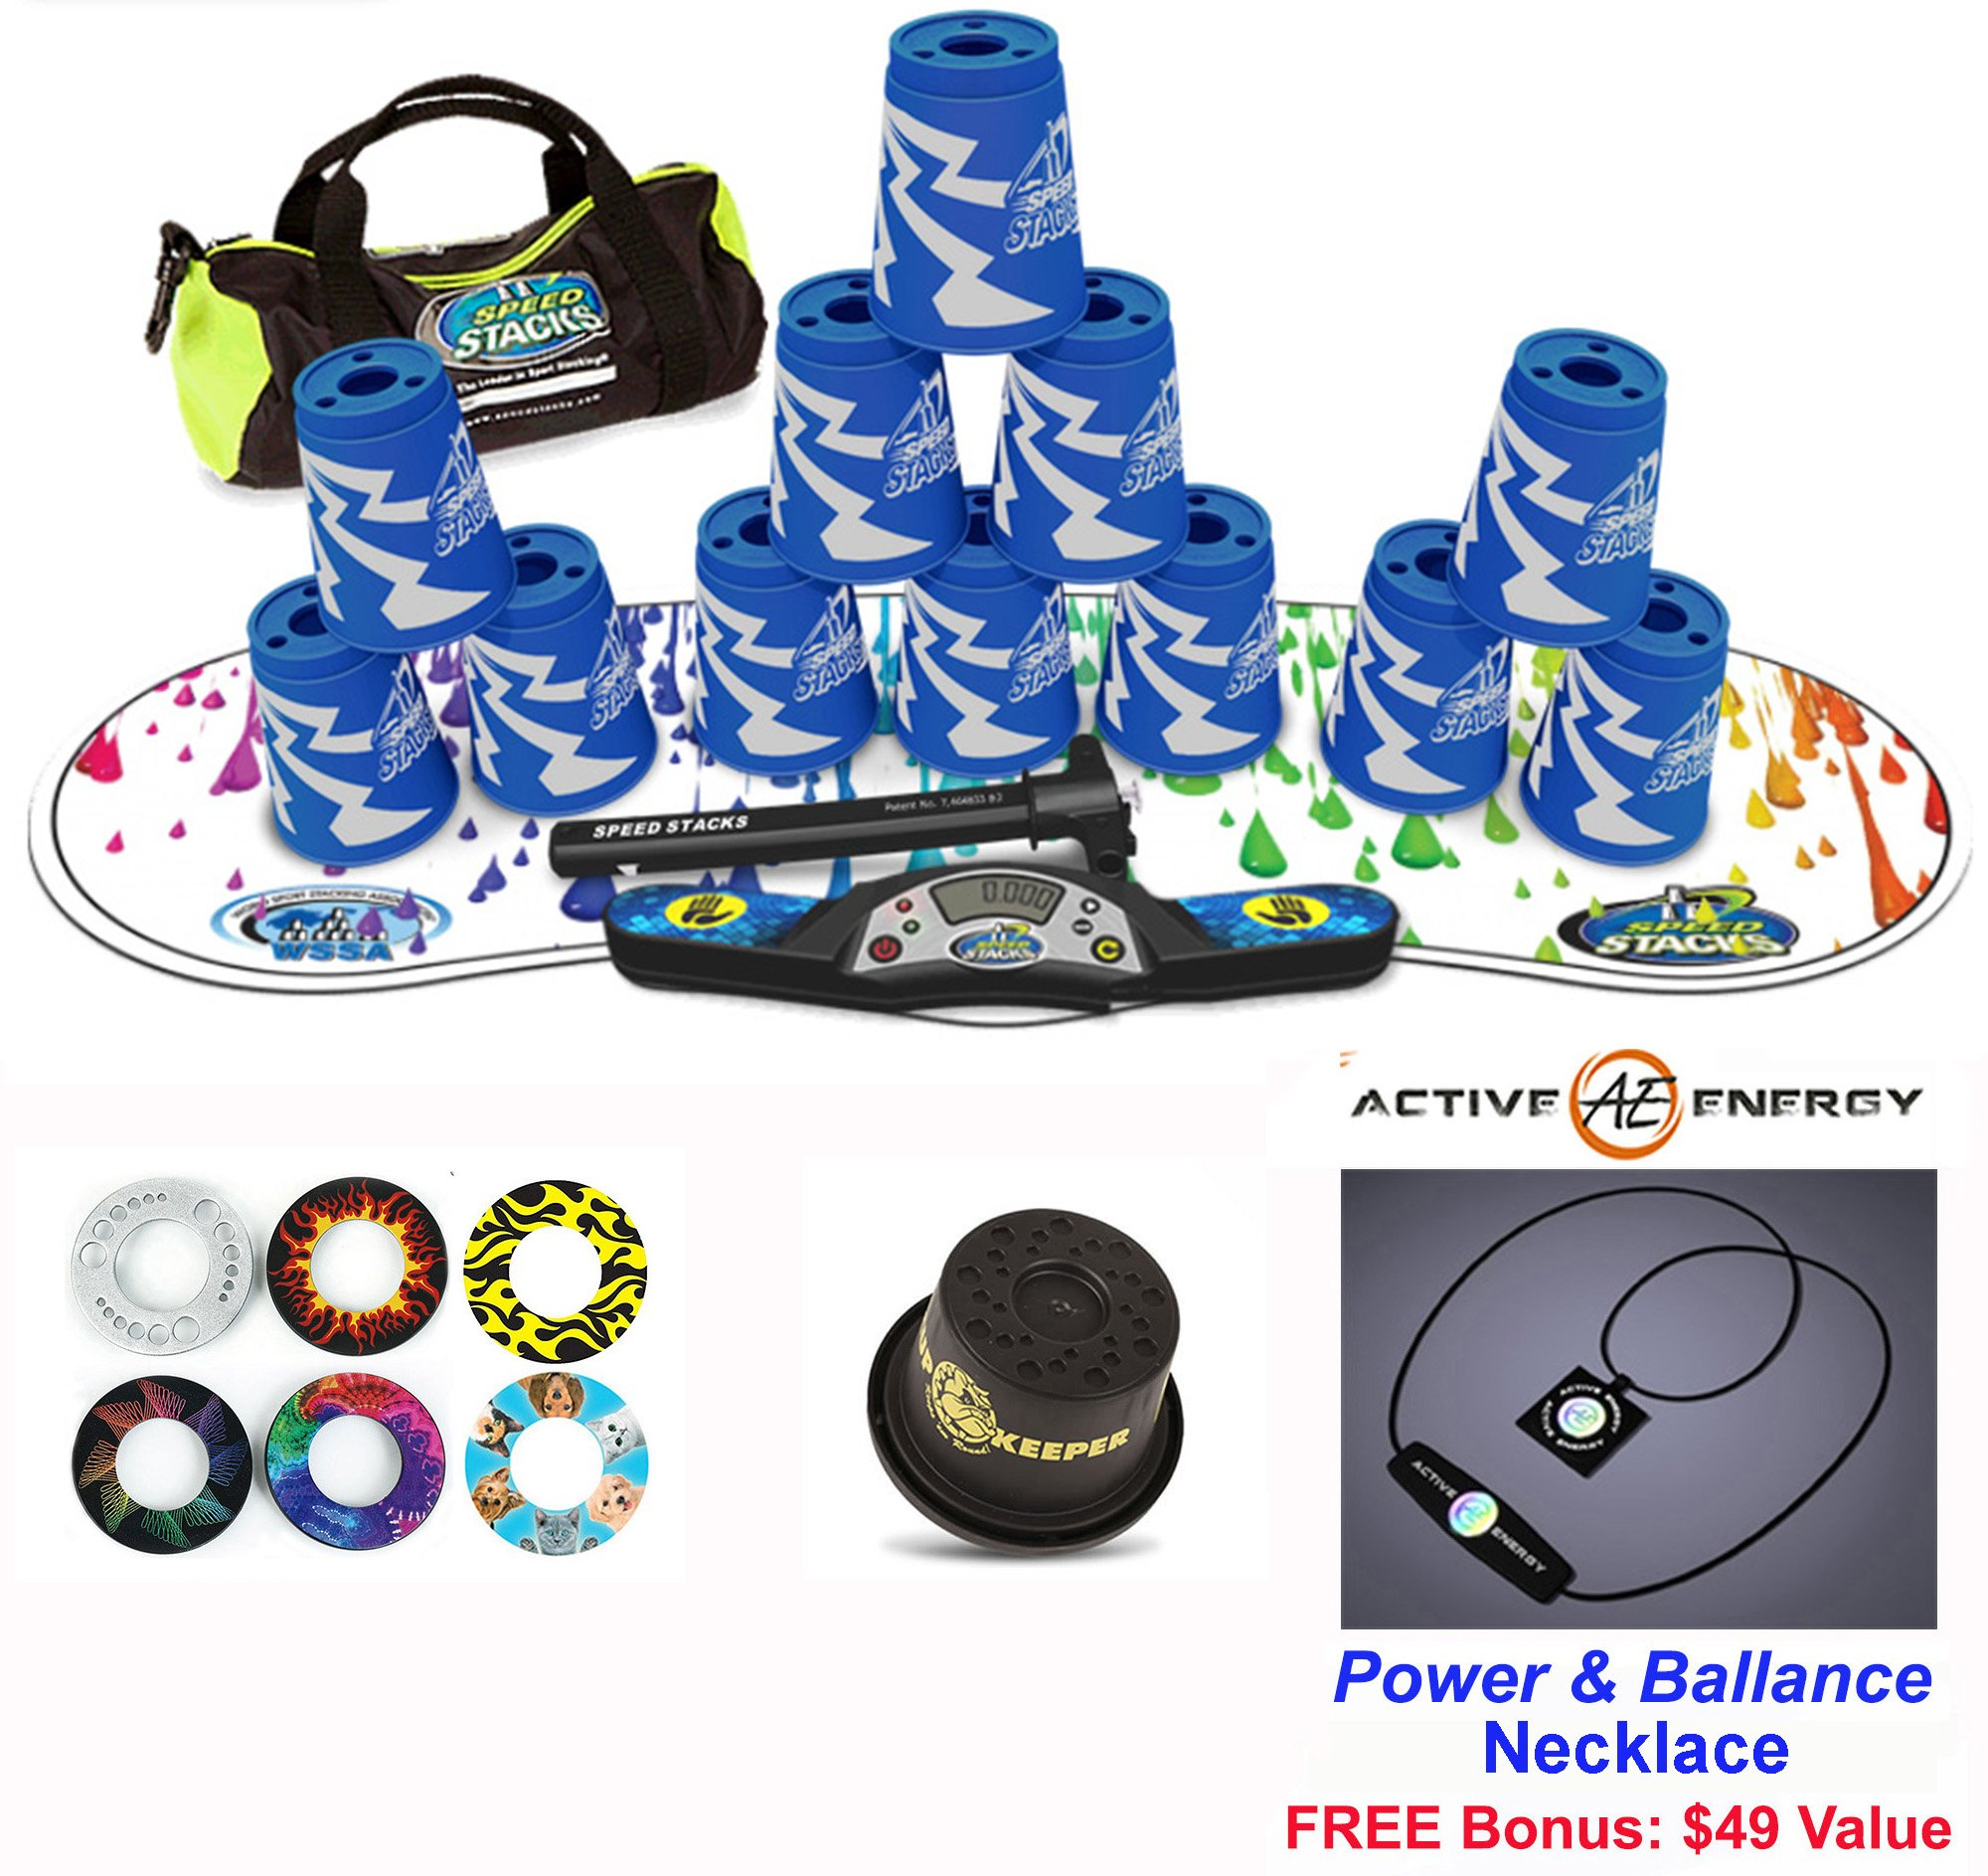 Speed Stacks Combo Set ''The Works'': 12 ATOMIC PUNCH 4'' Cups, RAINBOW DROP Gen 3 Mat, G4 Pro Timer, Cup Keeper, Stem, Gear Bag + Active Energy Necklace